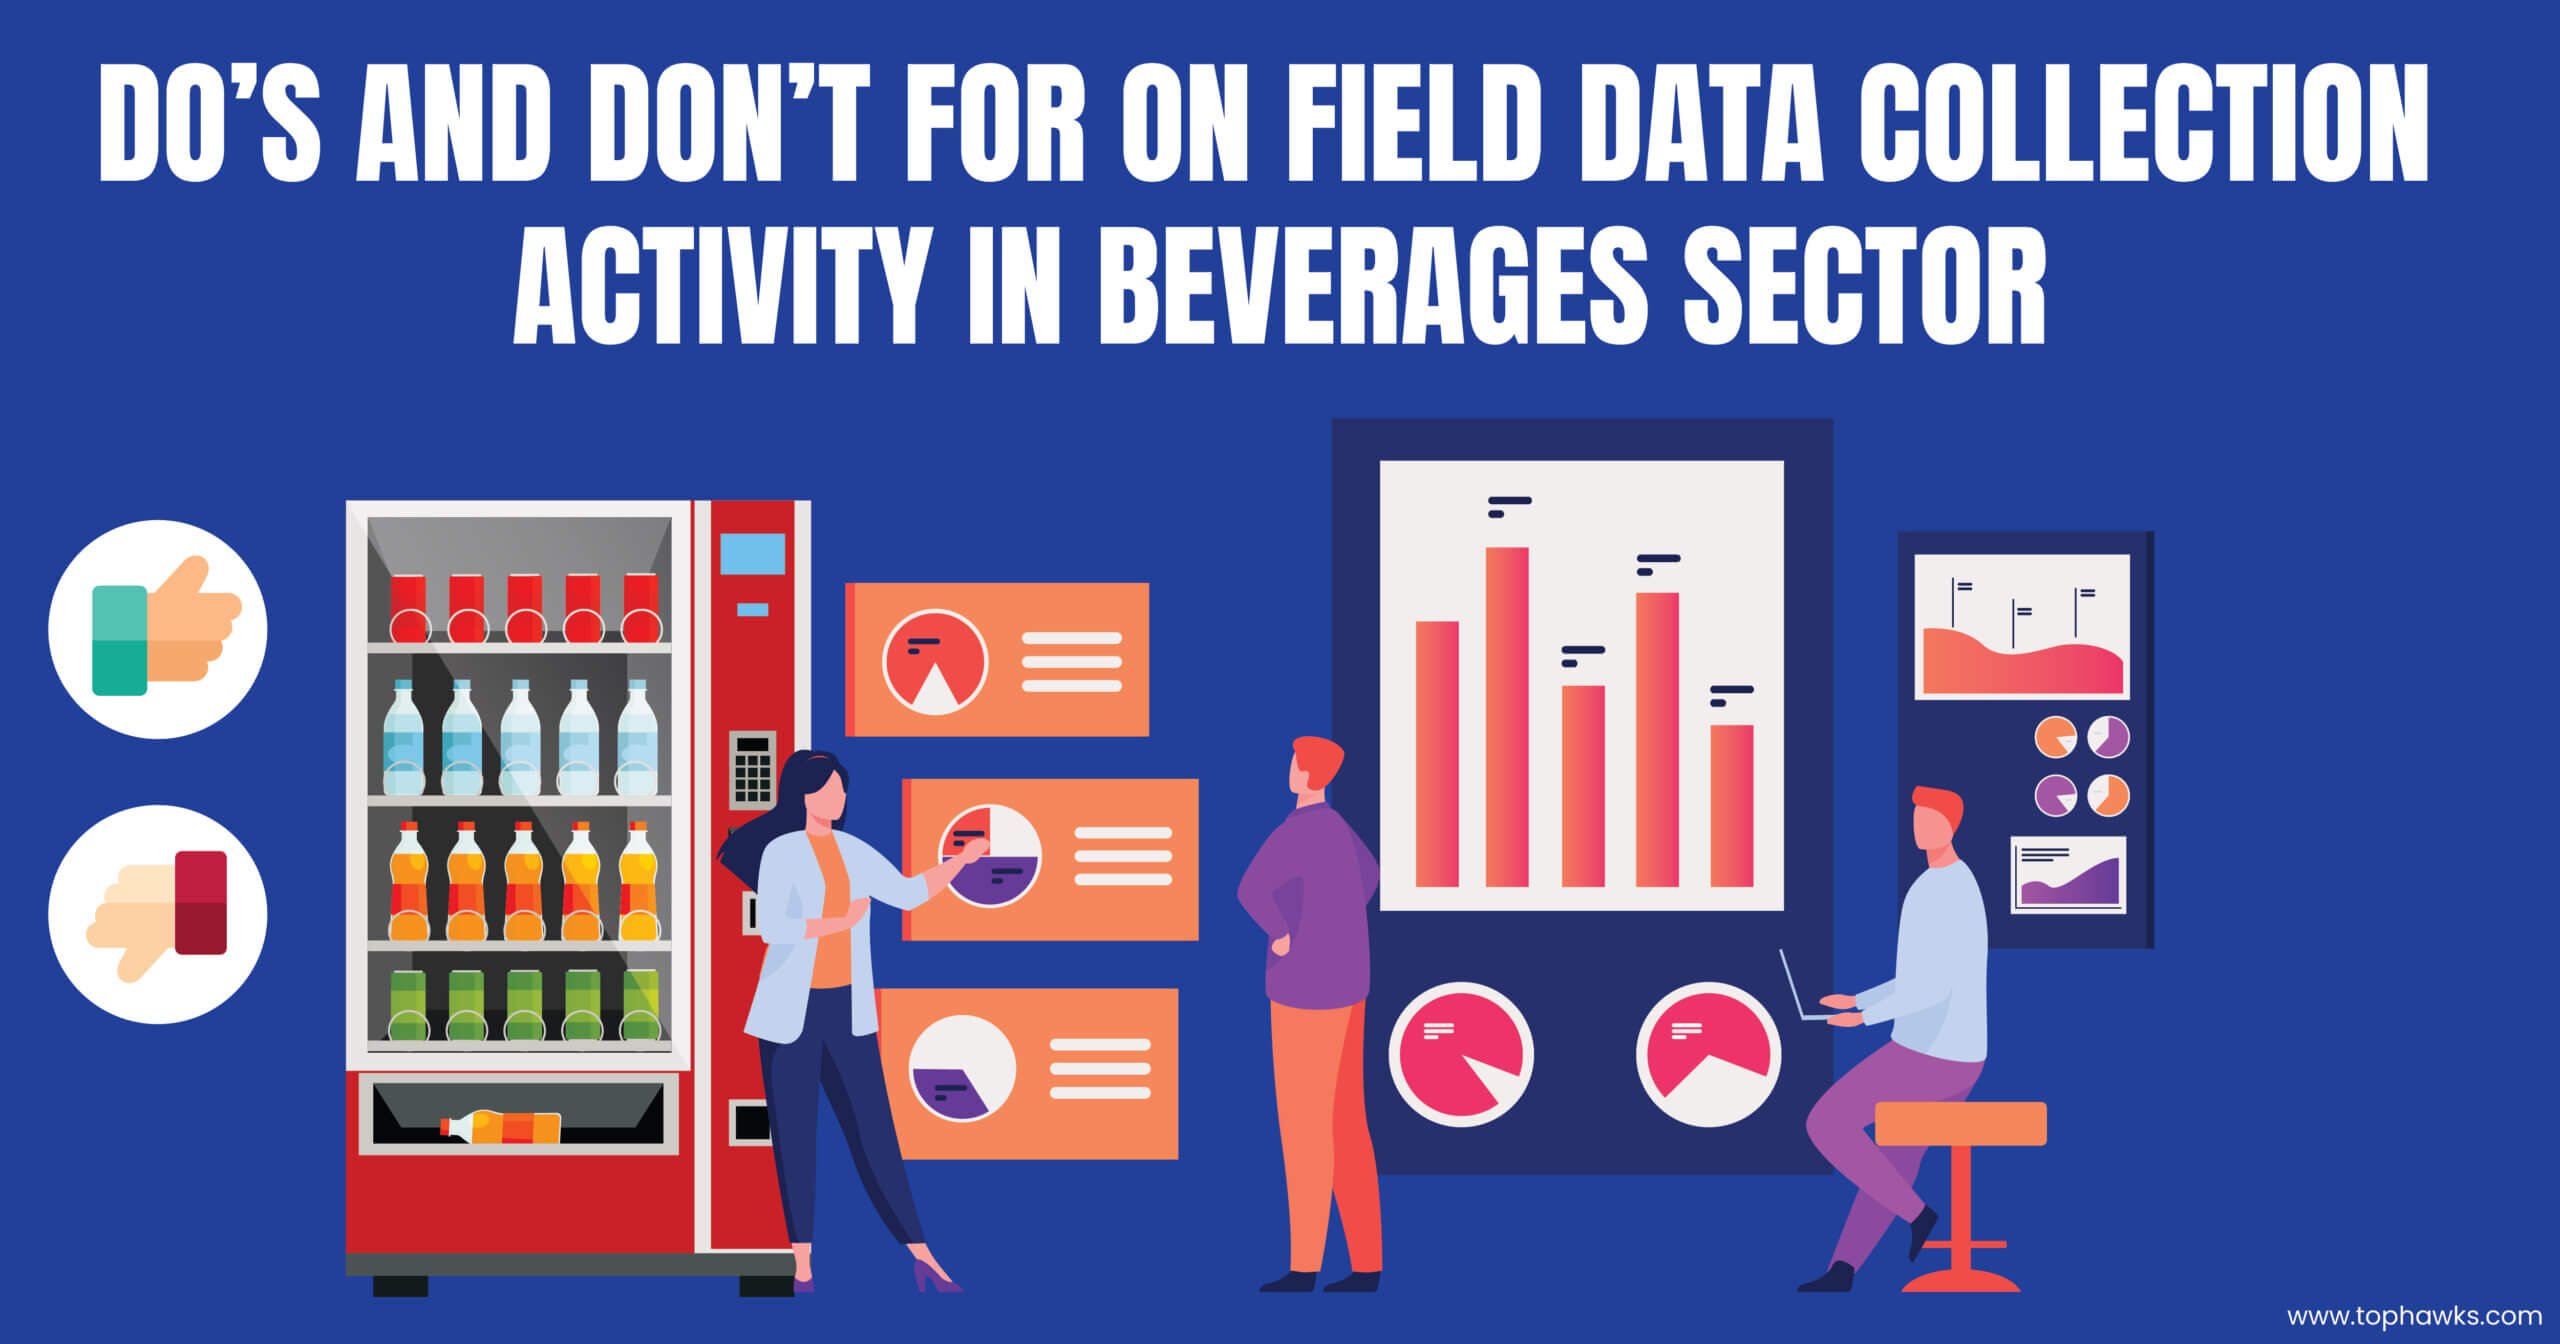 Do's and don'ts for On-field data collection activity in Beverages Sector?